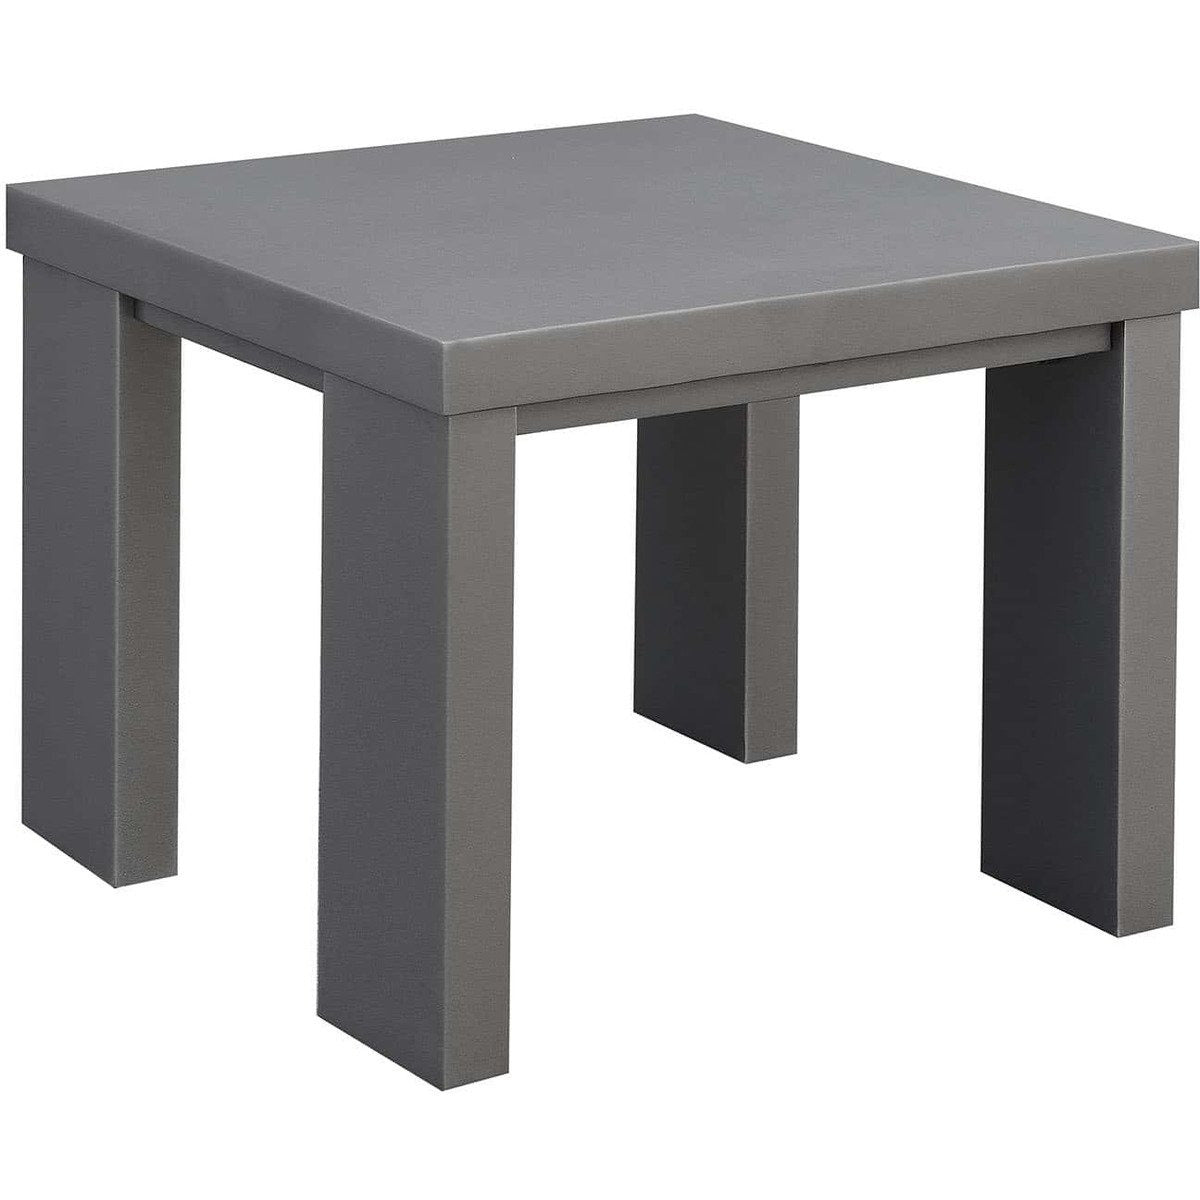 End Tables - Aluminum Framed End Table With Plank Style Top, Gray